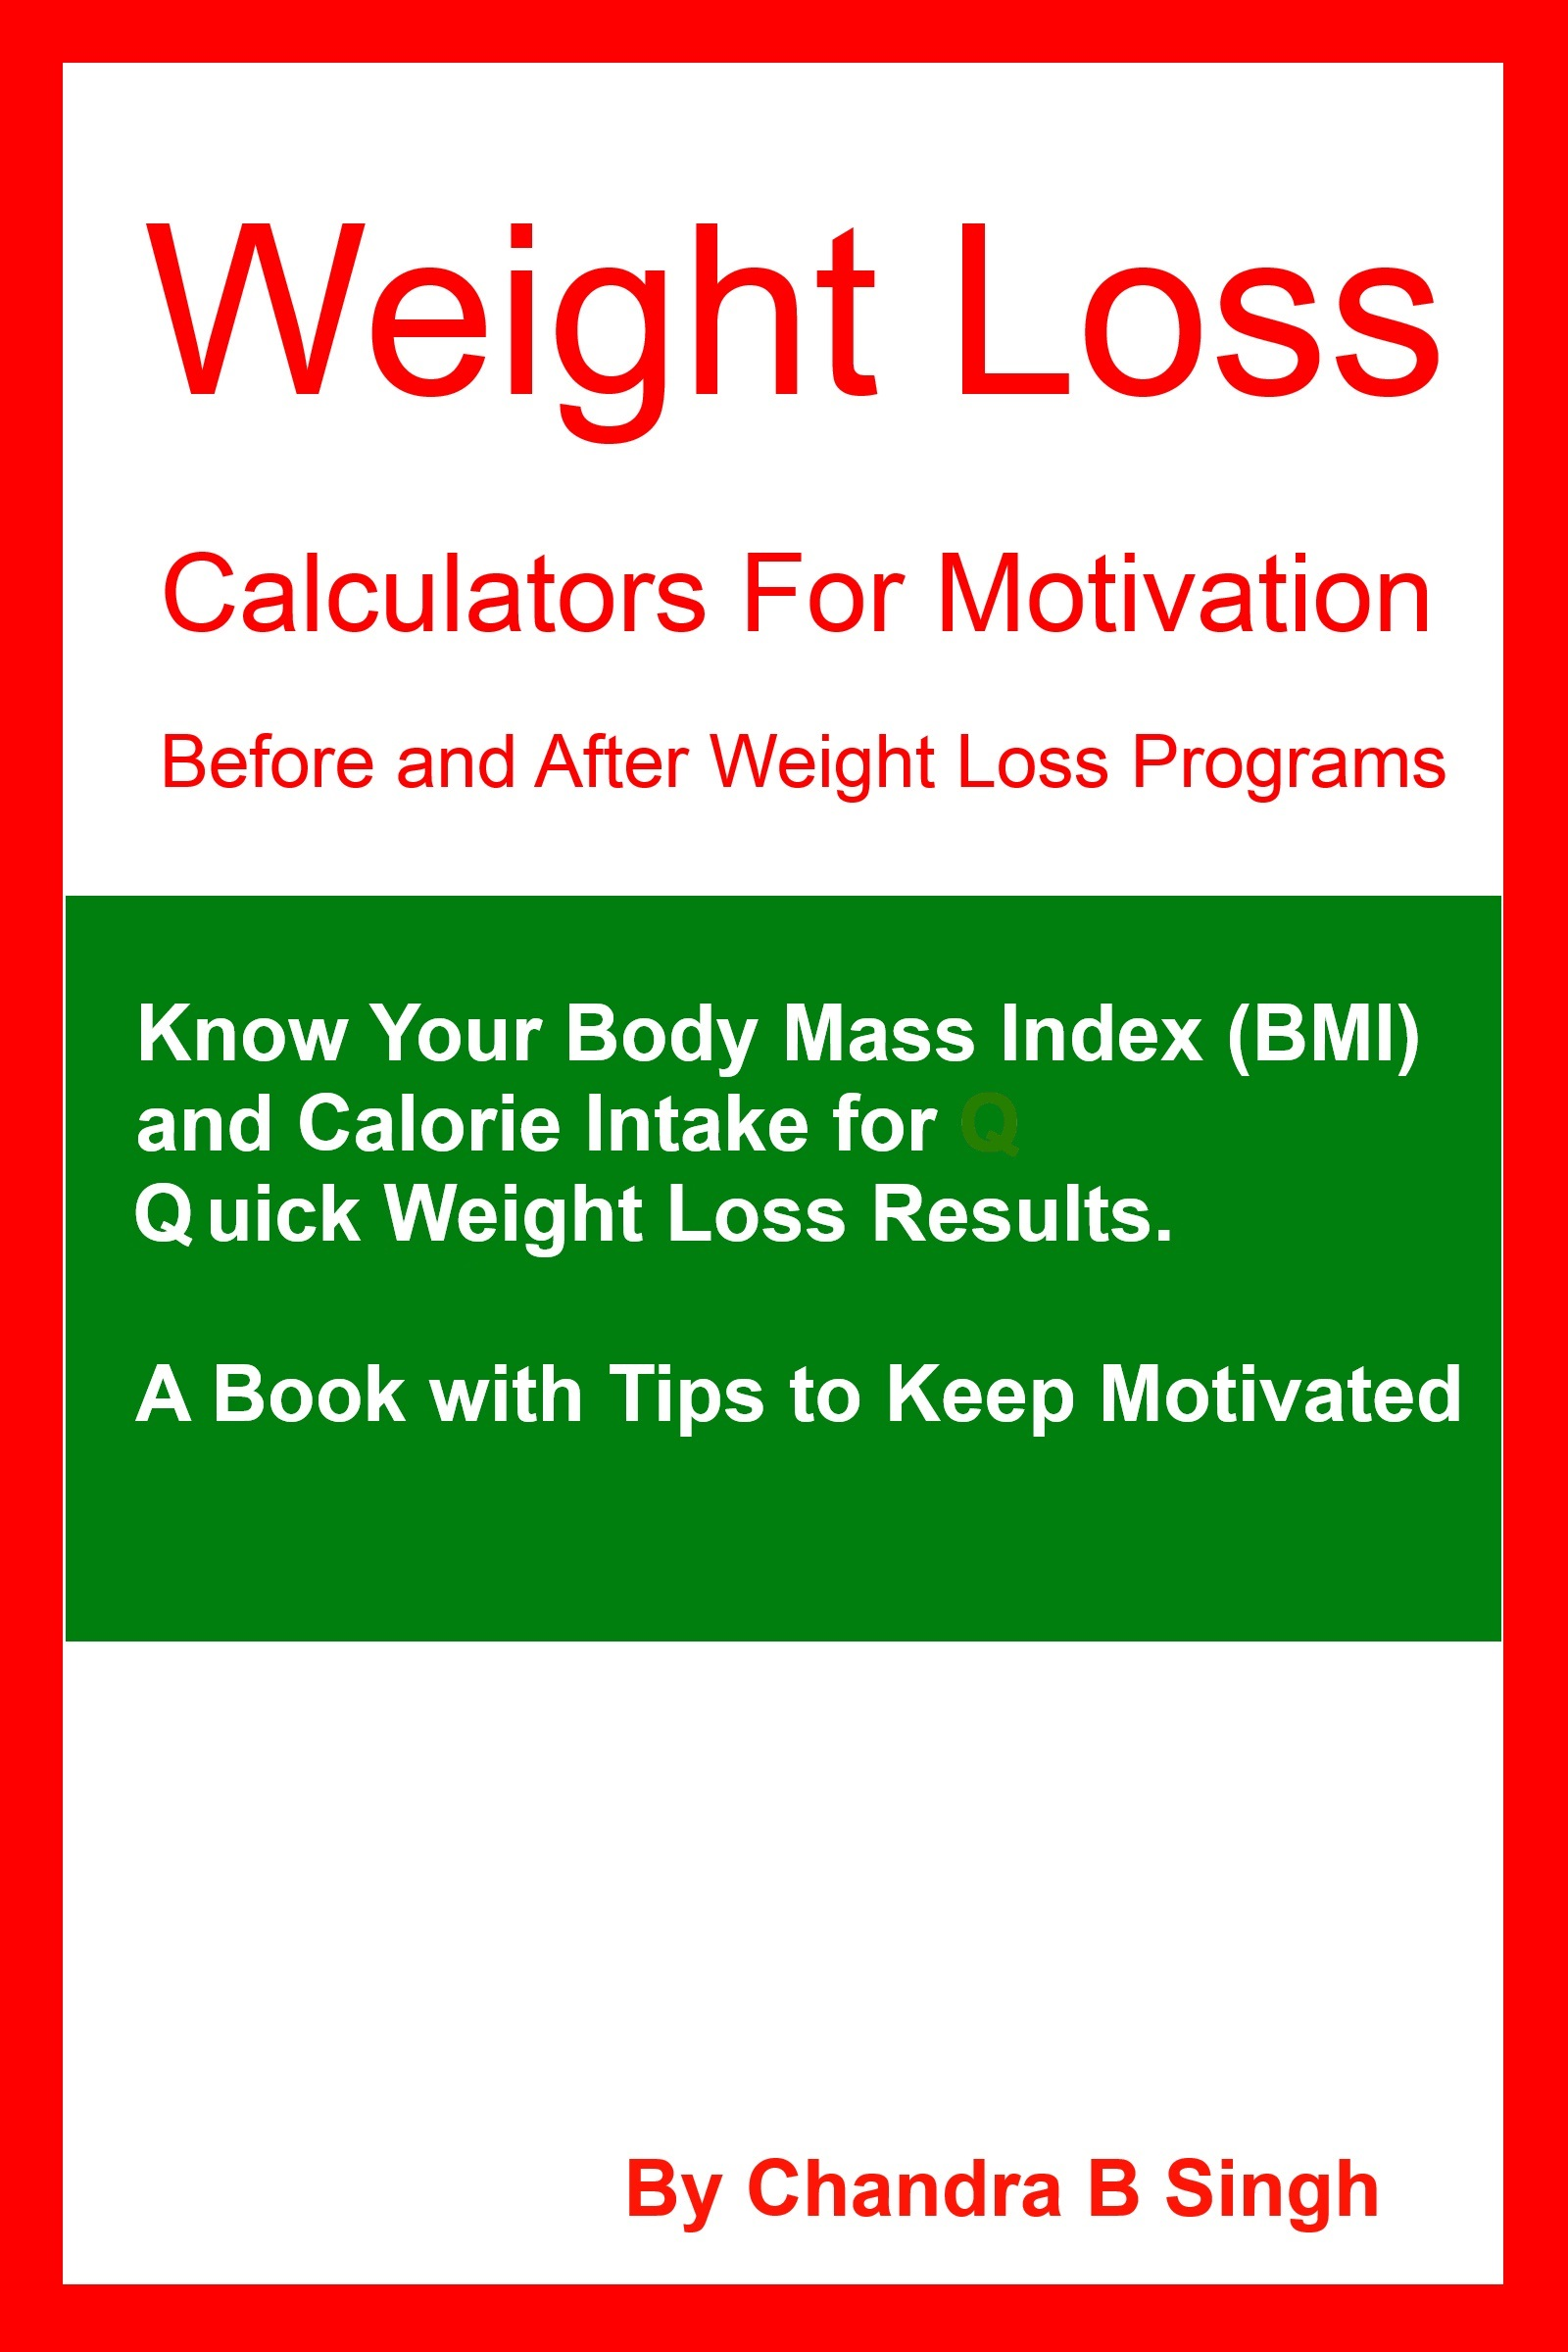 Weight Loss Calculators for Motivation – Before and After Weight Loss  Programs, an Ebook by Chandra B Singh